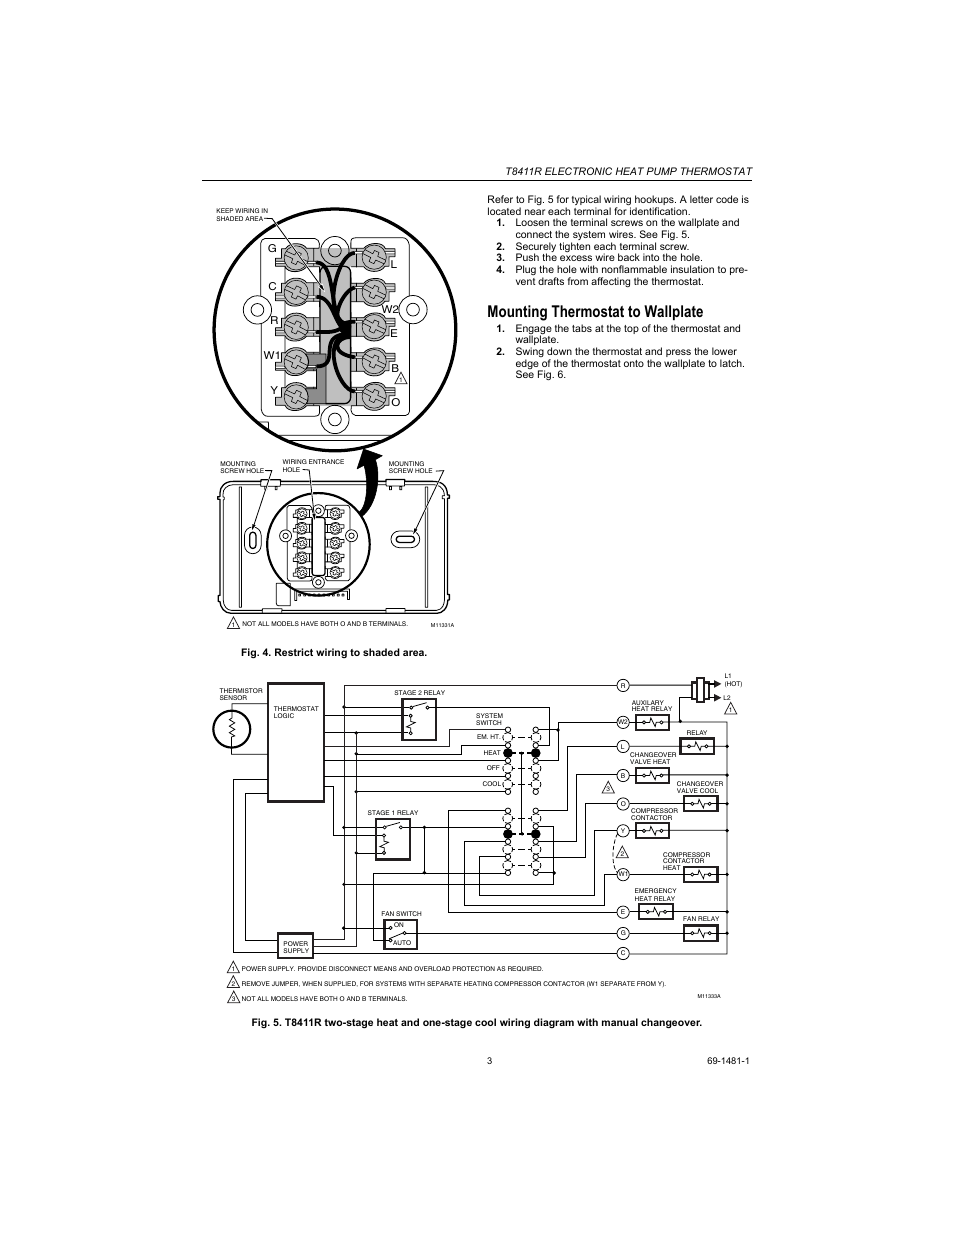 Honeywell Thermostat T8411r Wiring Diagram Two Stage Mounting To Wallplate Heat Pump Rh Manualsdir Com Round